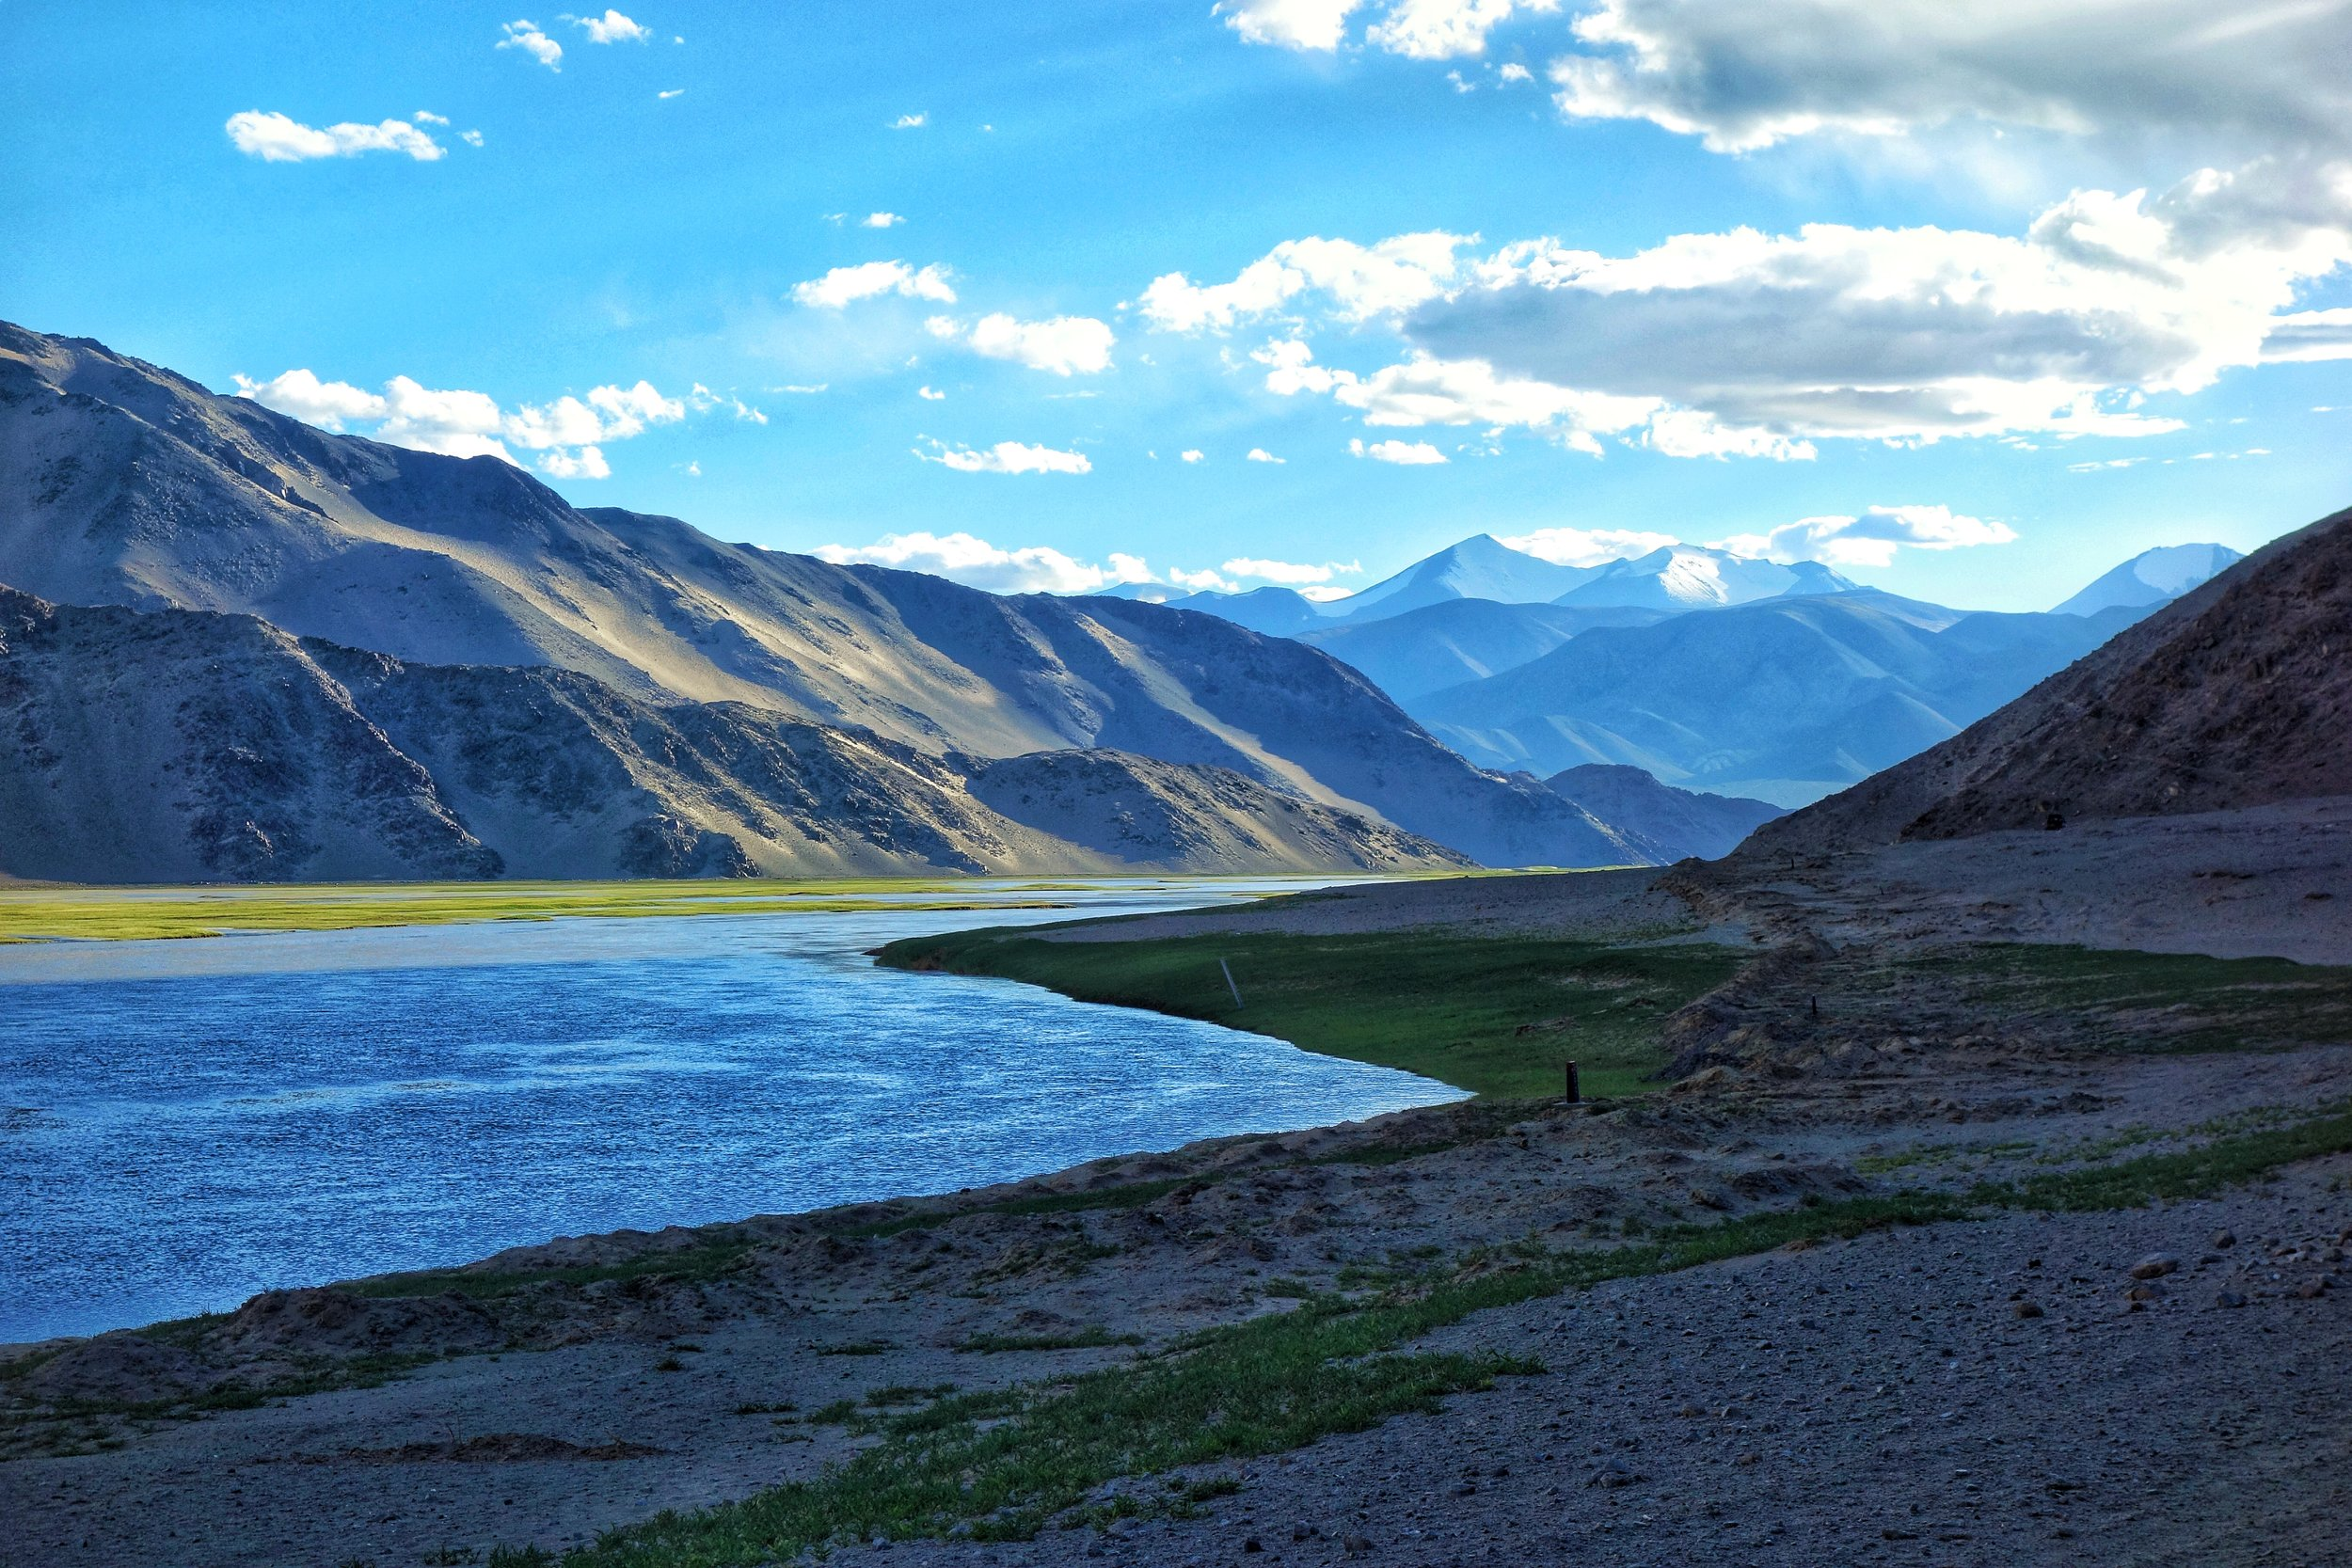 The Indus at the Changthang when it enters Ladakh from Tibet.